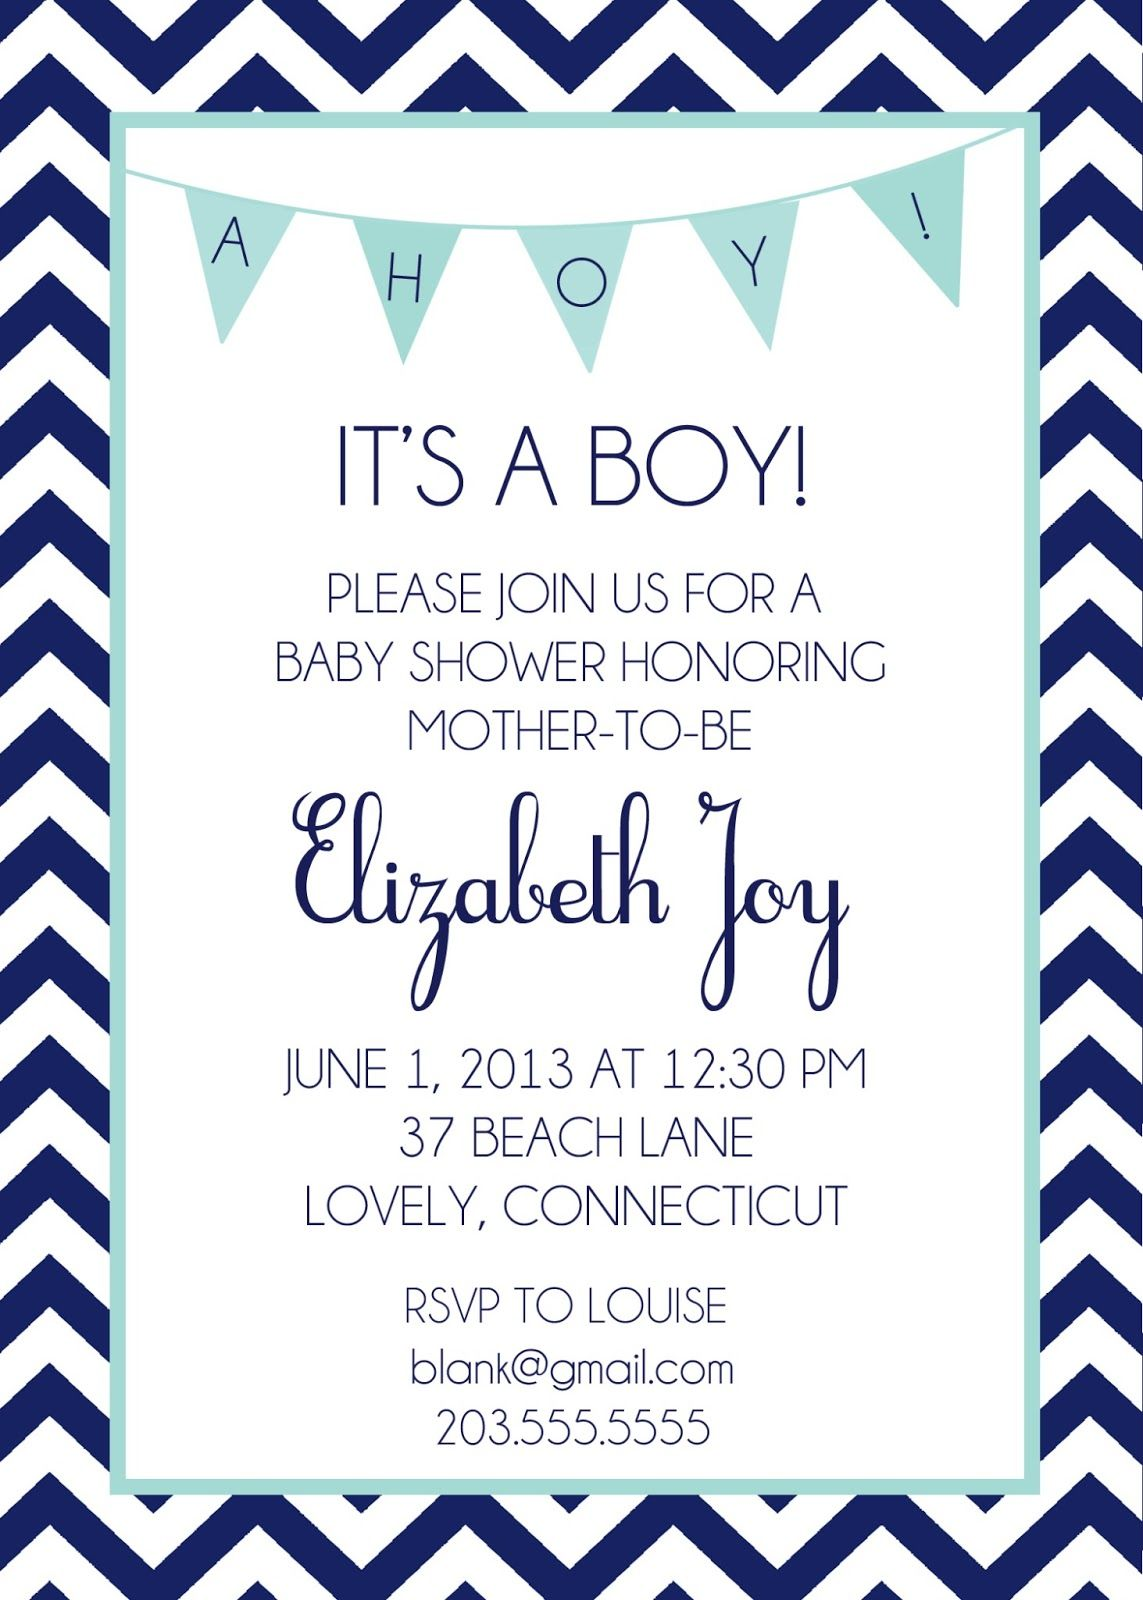 10 Best images about nautical baby shower on Pinterest | Sailboat ...